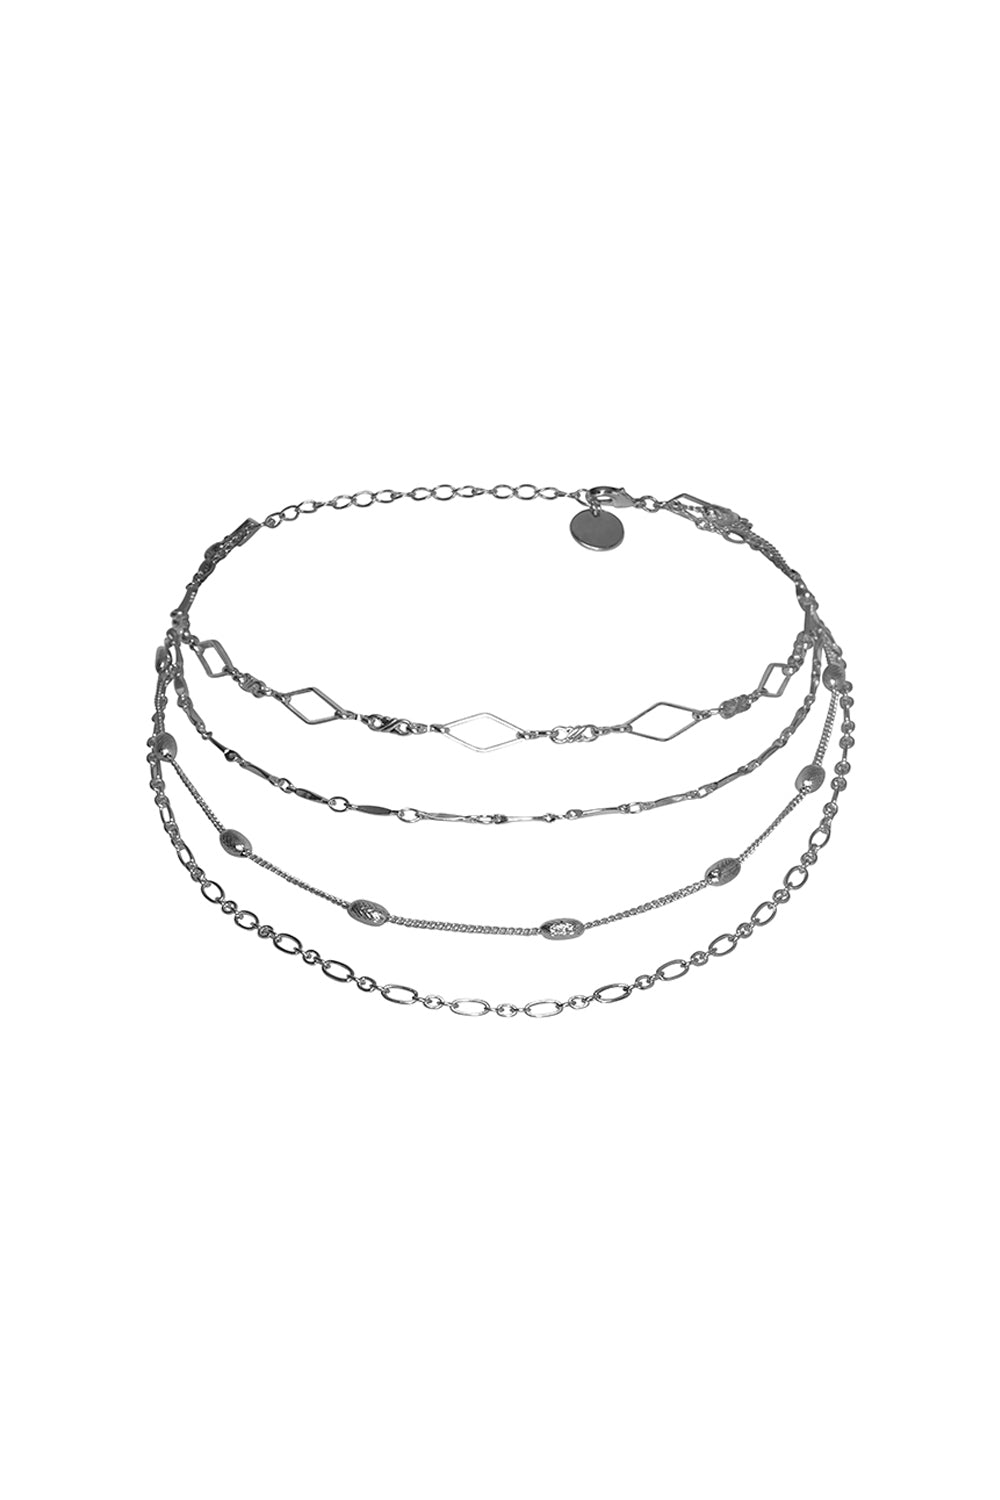 BROOKLYN CHOKER NECKLACE IN SILVER